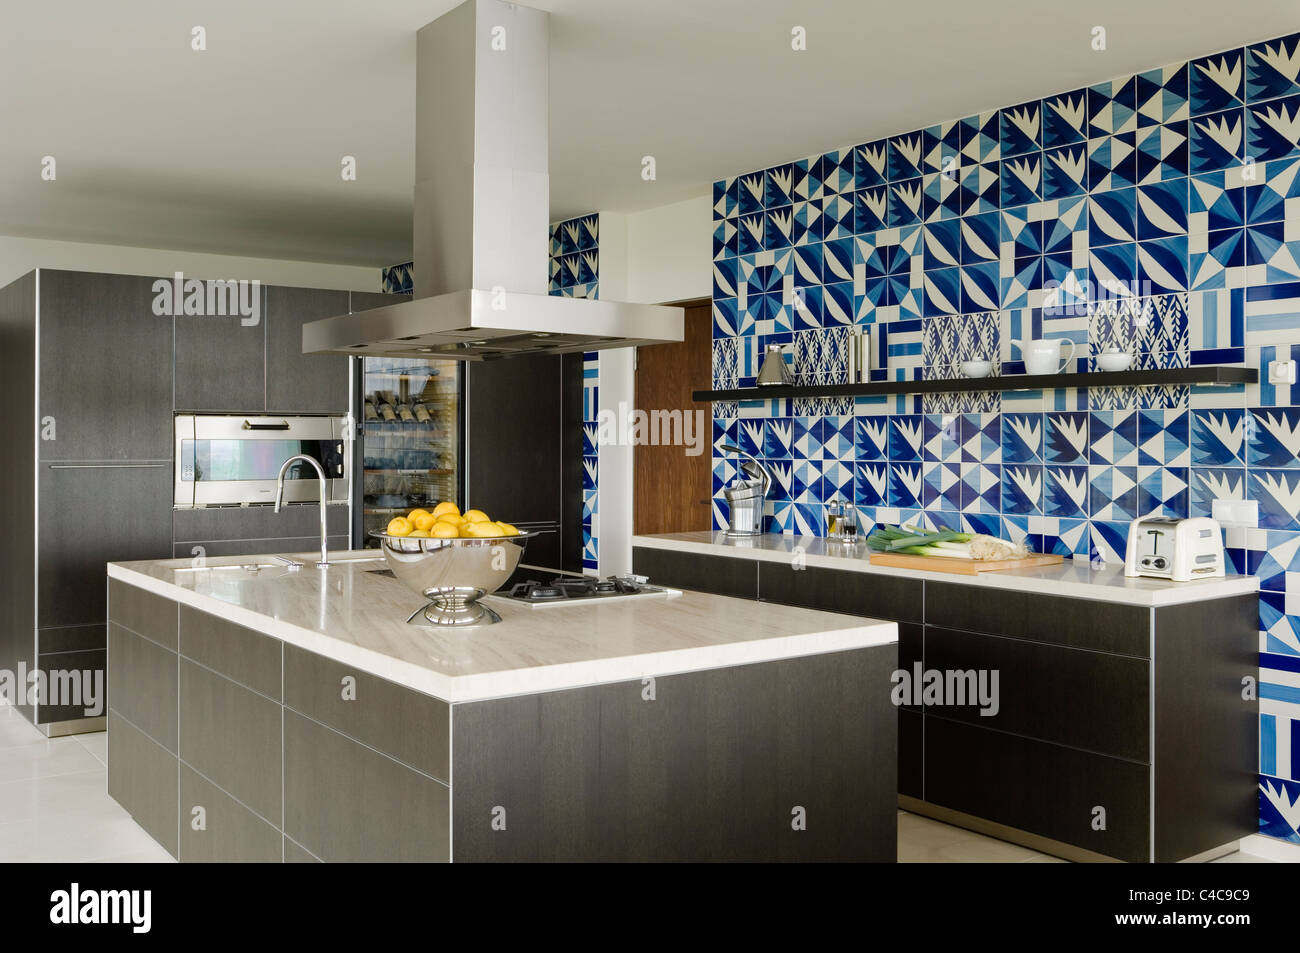 Bulthaup Kitchen Island Part - 29: Dark Grey Oak Bulthaup Kitchen With Blue And White Tiling In A Contemporary  Villa In Spain